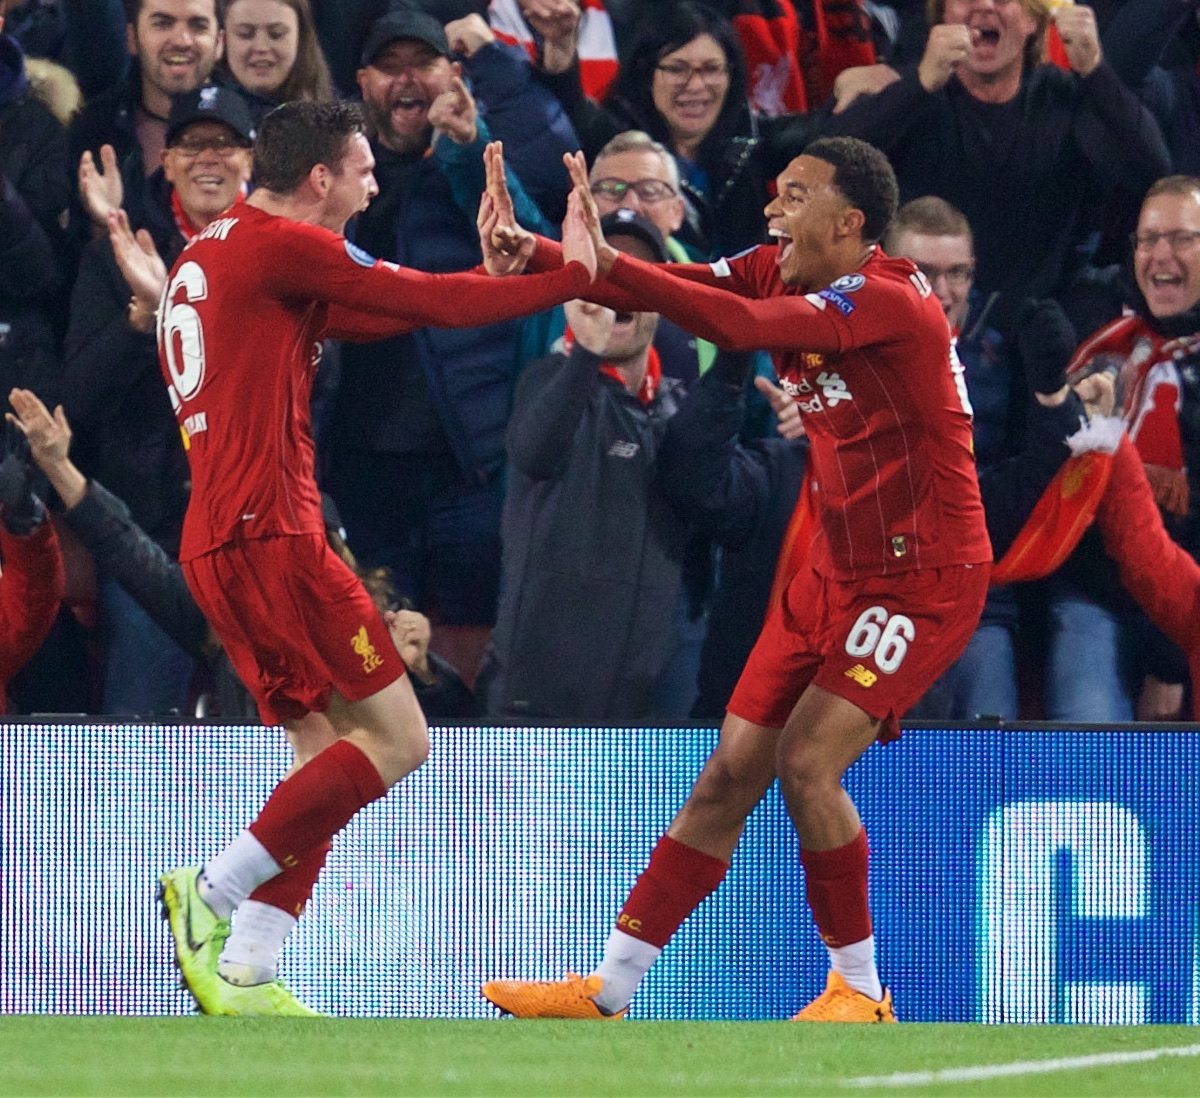 LIVERPOOL, ENGLAND - Wednesday, October 2, 2019: Liverpool's Andy Robertson (L) celebrates scoring the second goal with team-mate Trent Alexander-Arnold during the UEFA Champions League Group E match between Liverpool FC and FC Salzburg at Anfield. (Pic by David Rawcliffe/Propaganda)